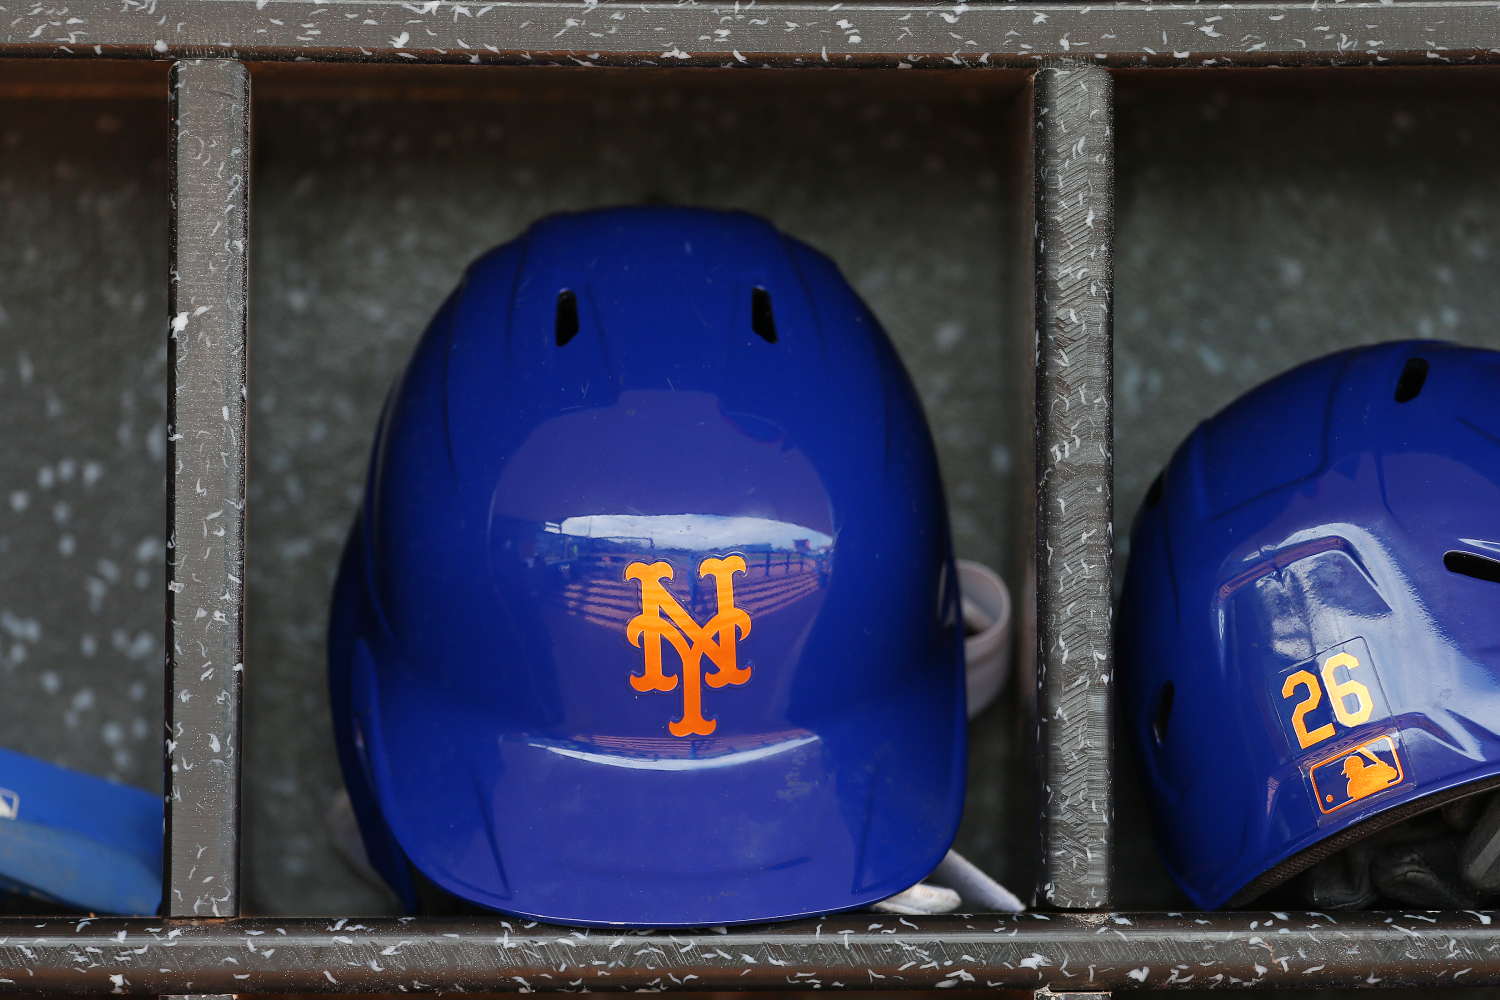 While the New York Mets just got back on the field, they just did something significant off it. They took a huge stance against Donald Trump.